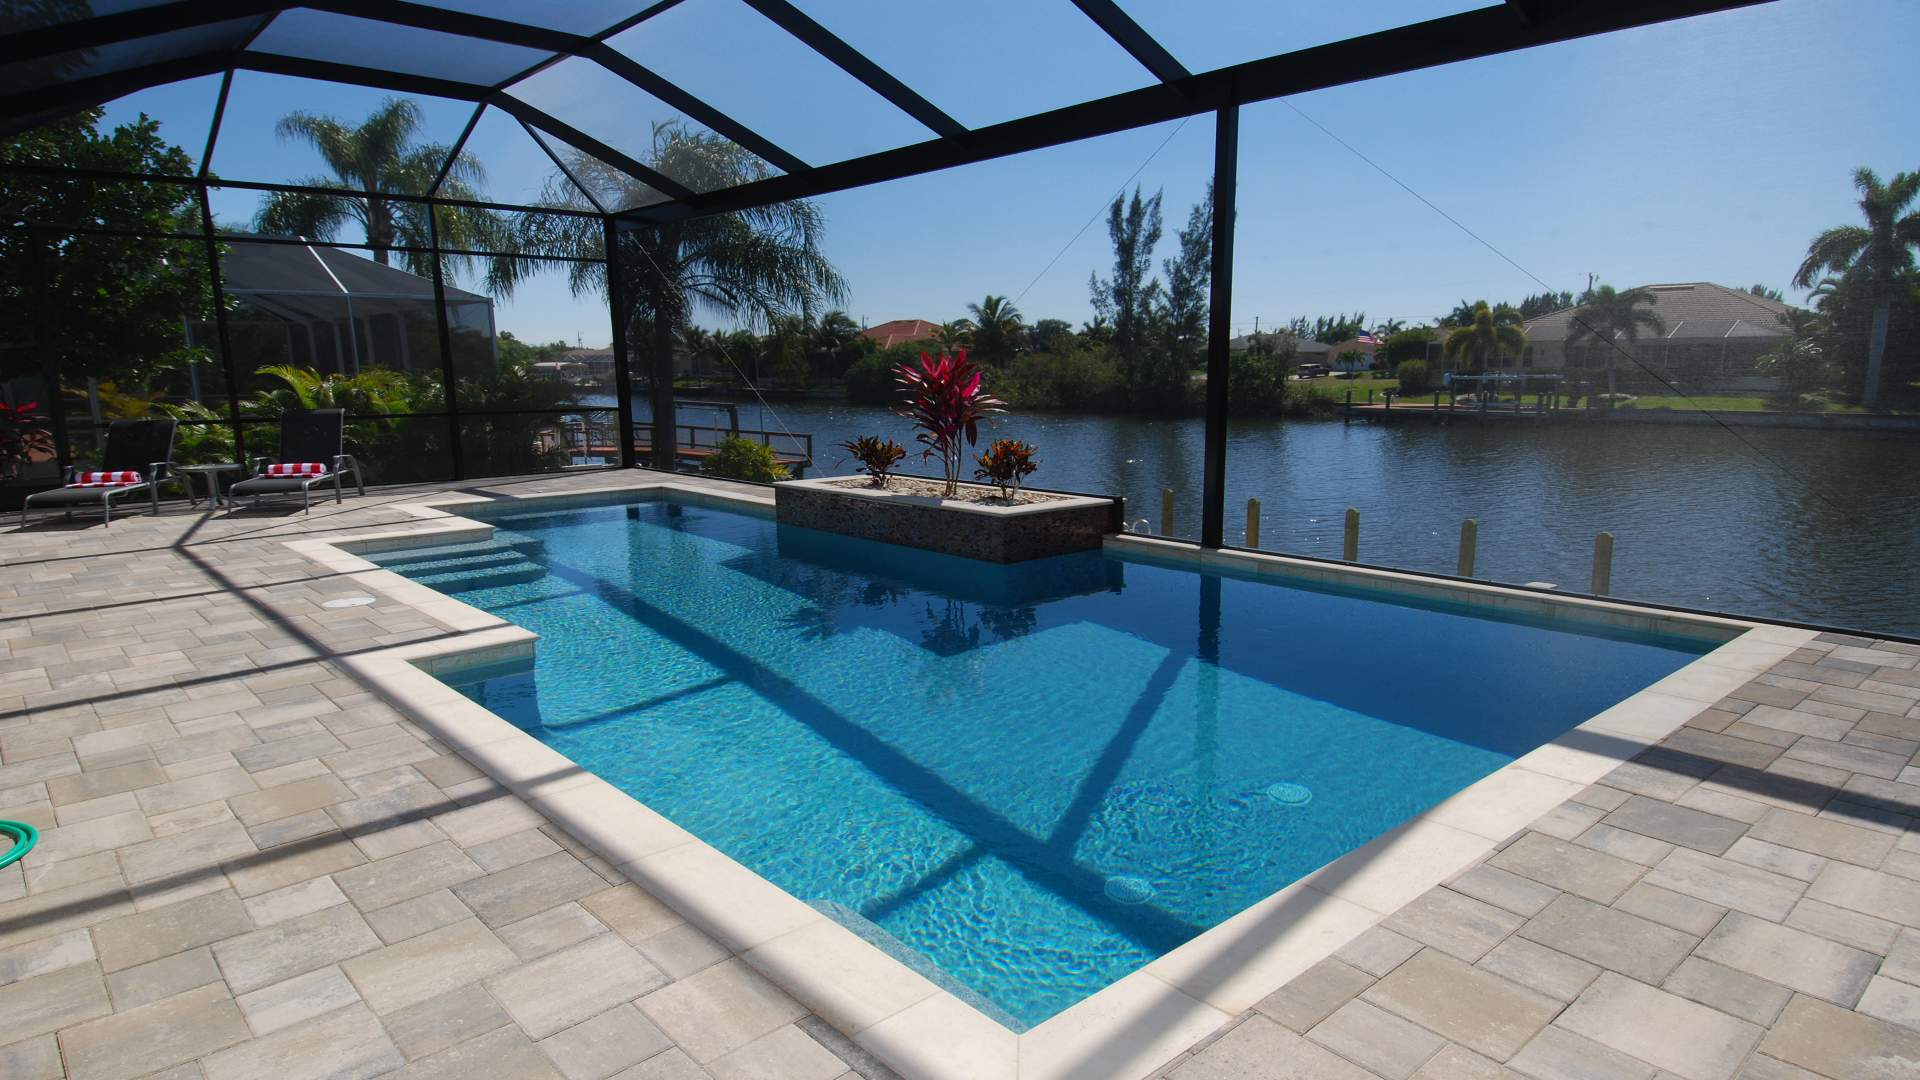 The pool was designed with contemporary clean lines